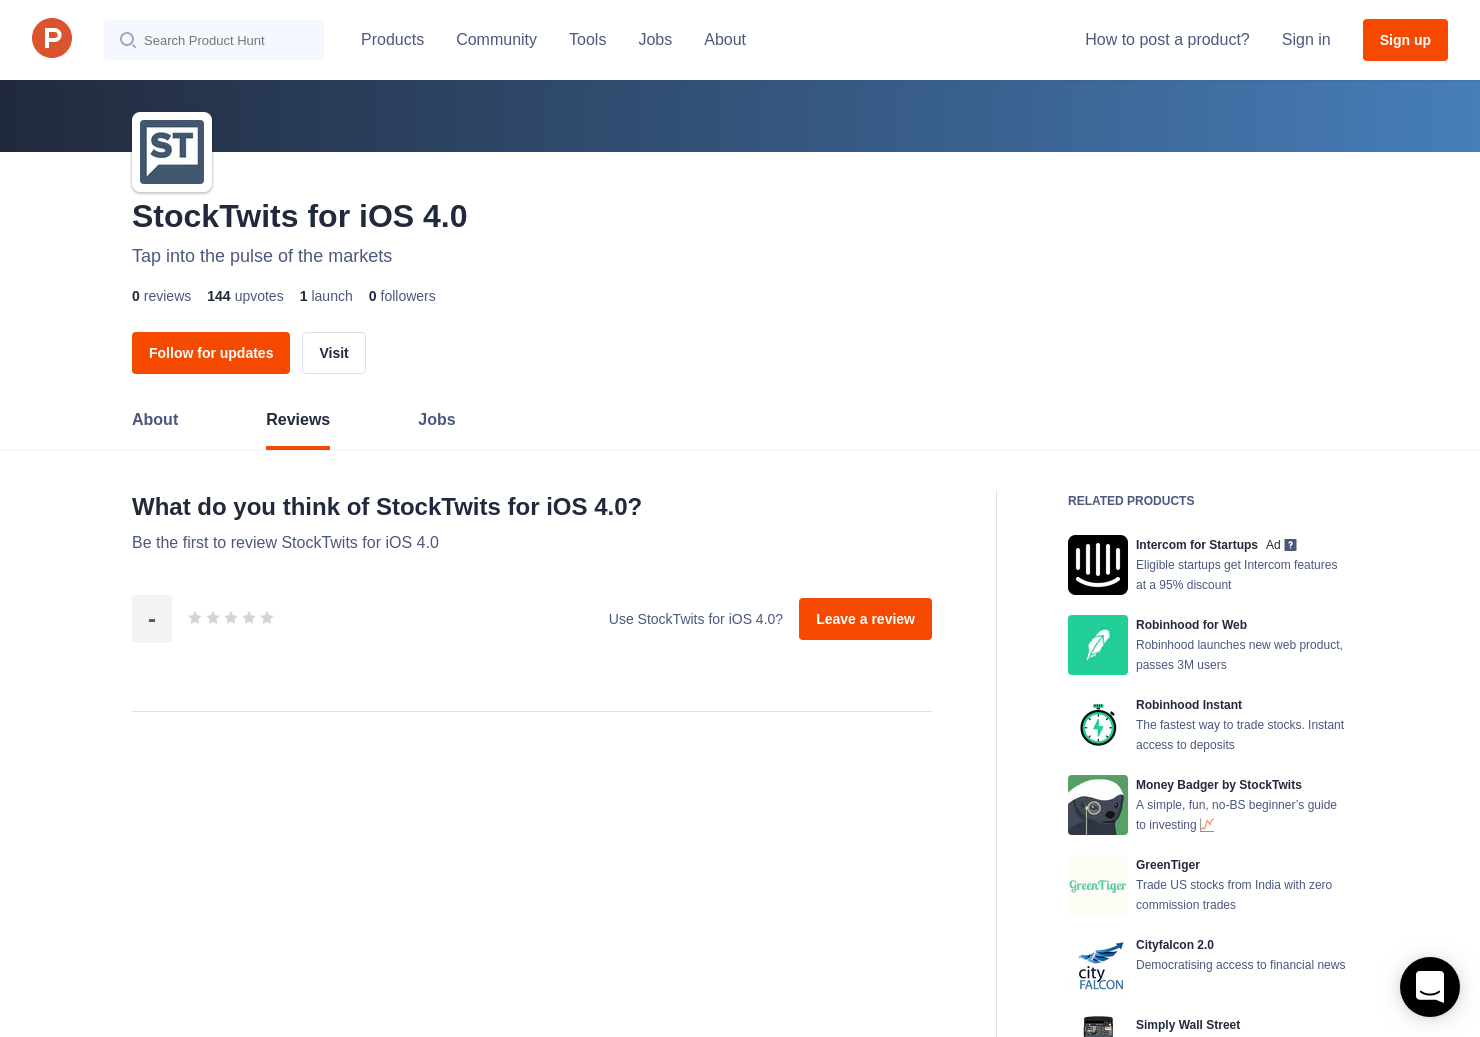 StockTwits for iOS 4 0 Reviews - Pros, Cons and Rating